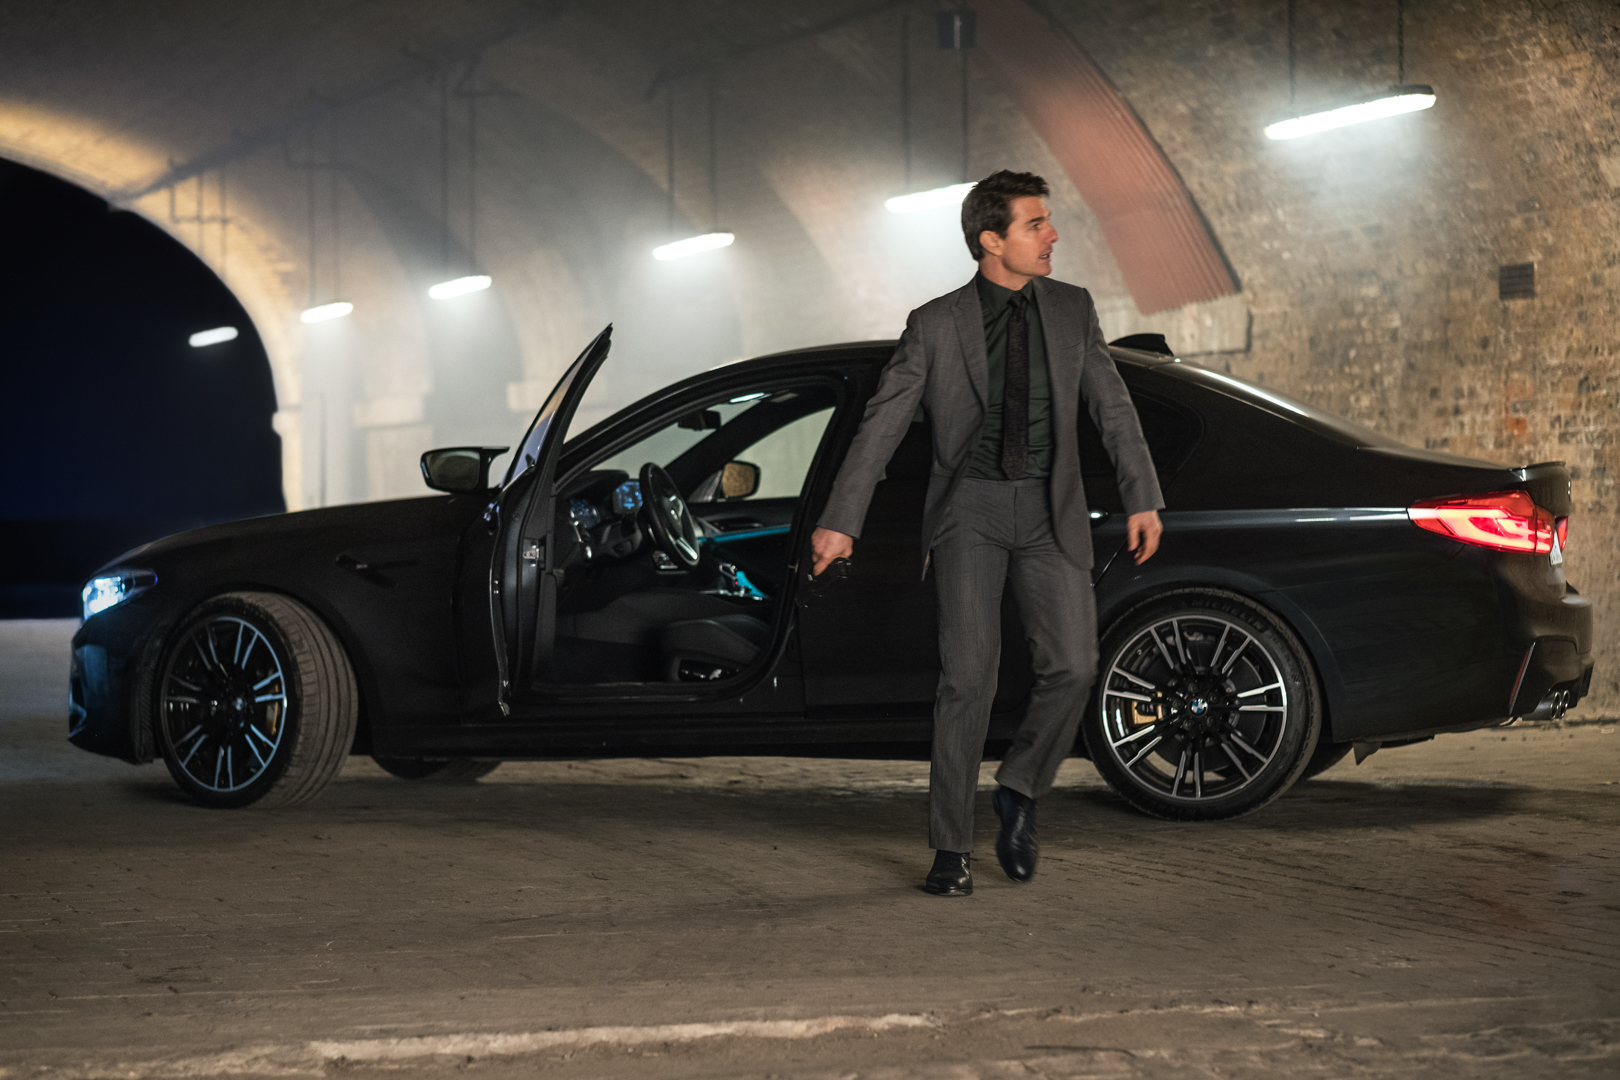 Mission Impossible Fallout BMW M5 2 of 2